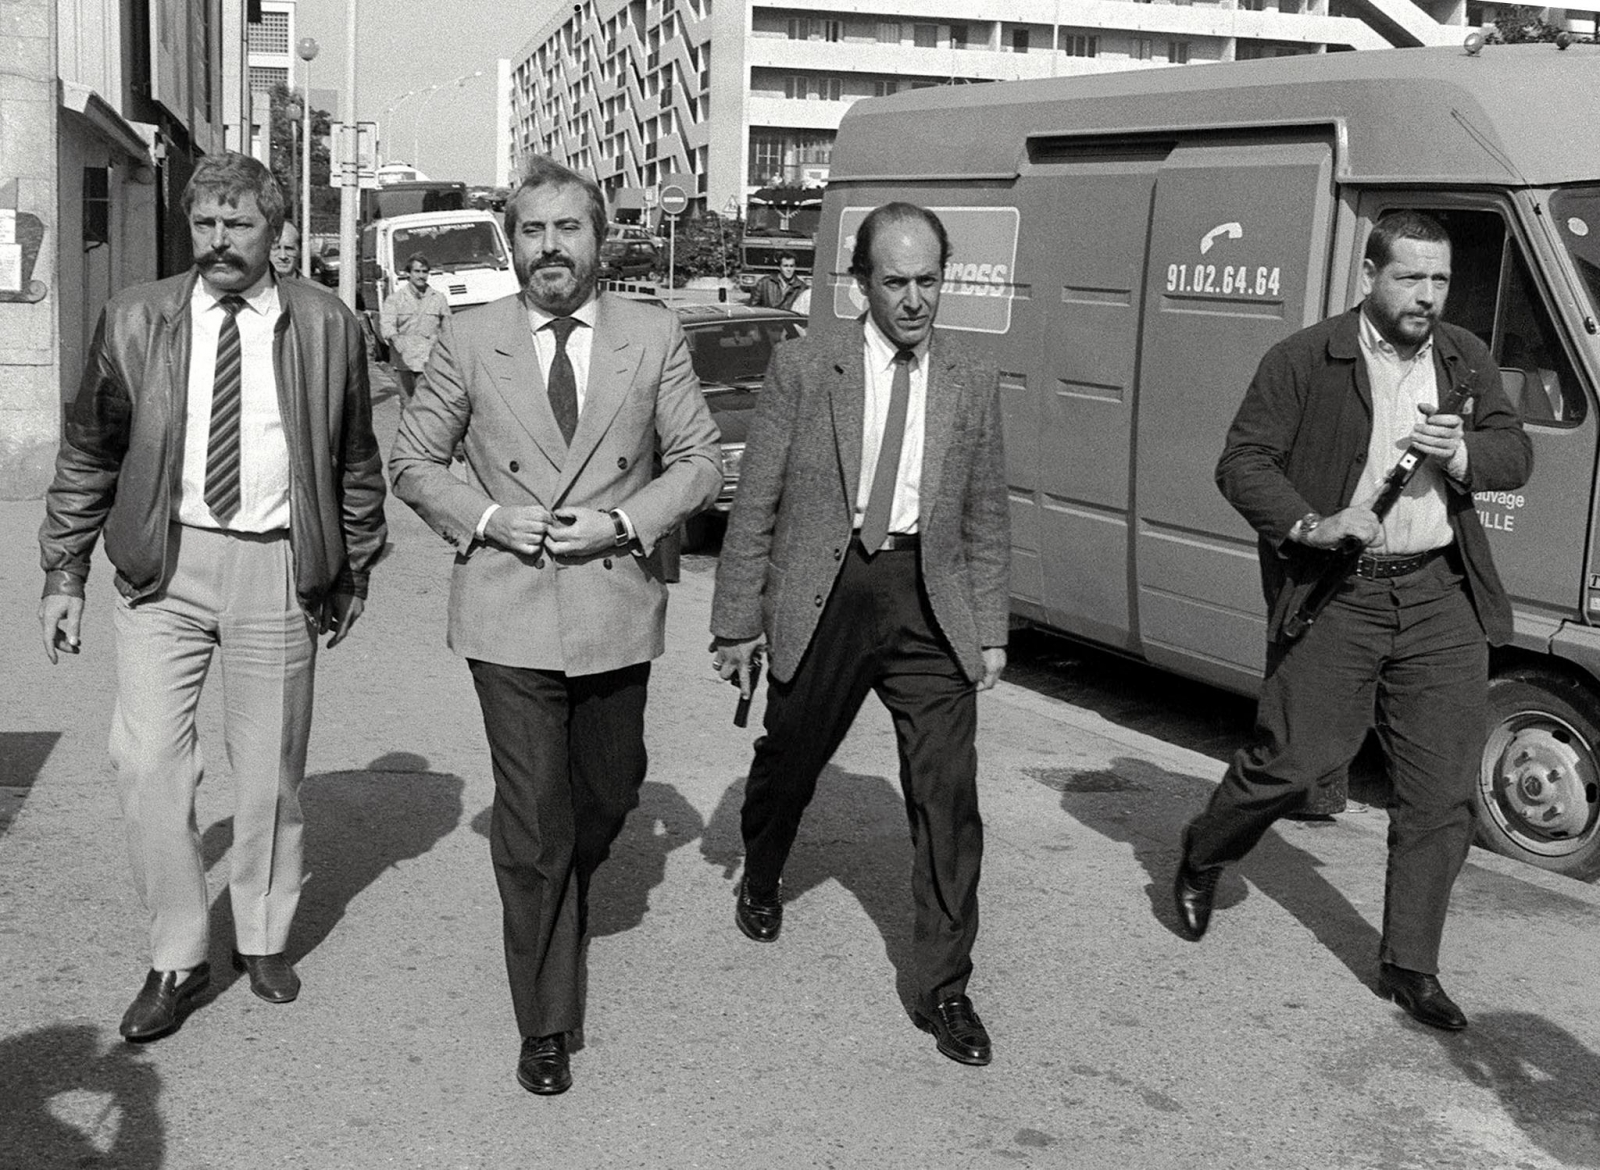 Giovanni pictured in 1986 flanked by bodyguards. Six years later he was dead, assassinated by the Sicilian  mafia. (Getty)